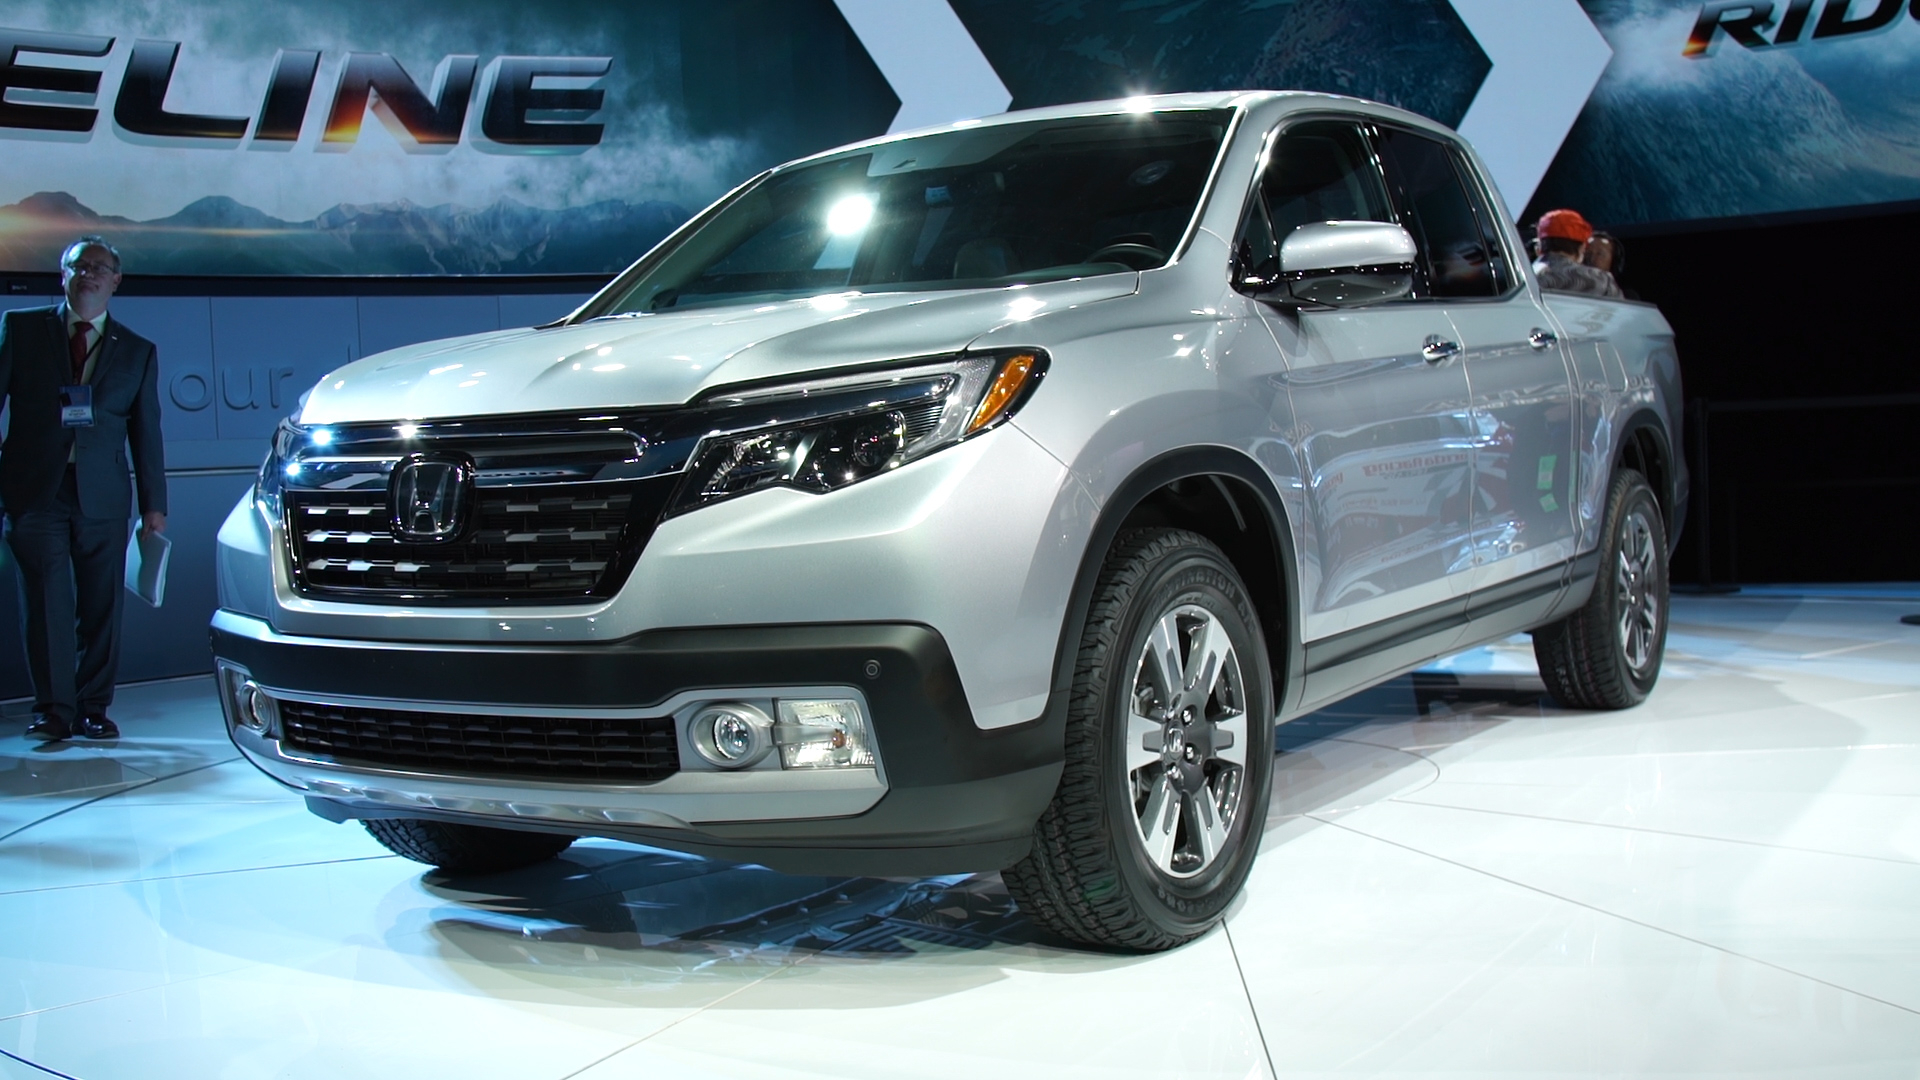 2017 Honda Ridgeline Pickup Truck Looks Conventional But Still Innovative Consumer Reports